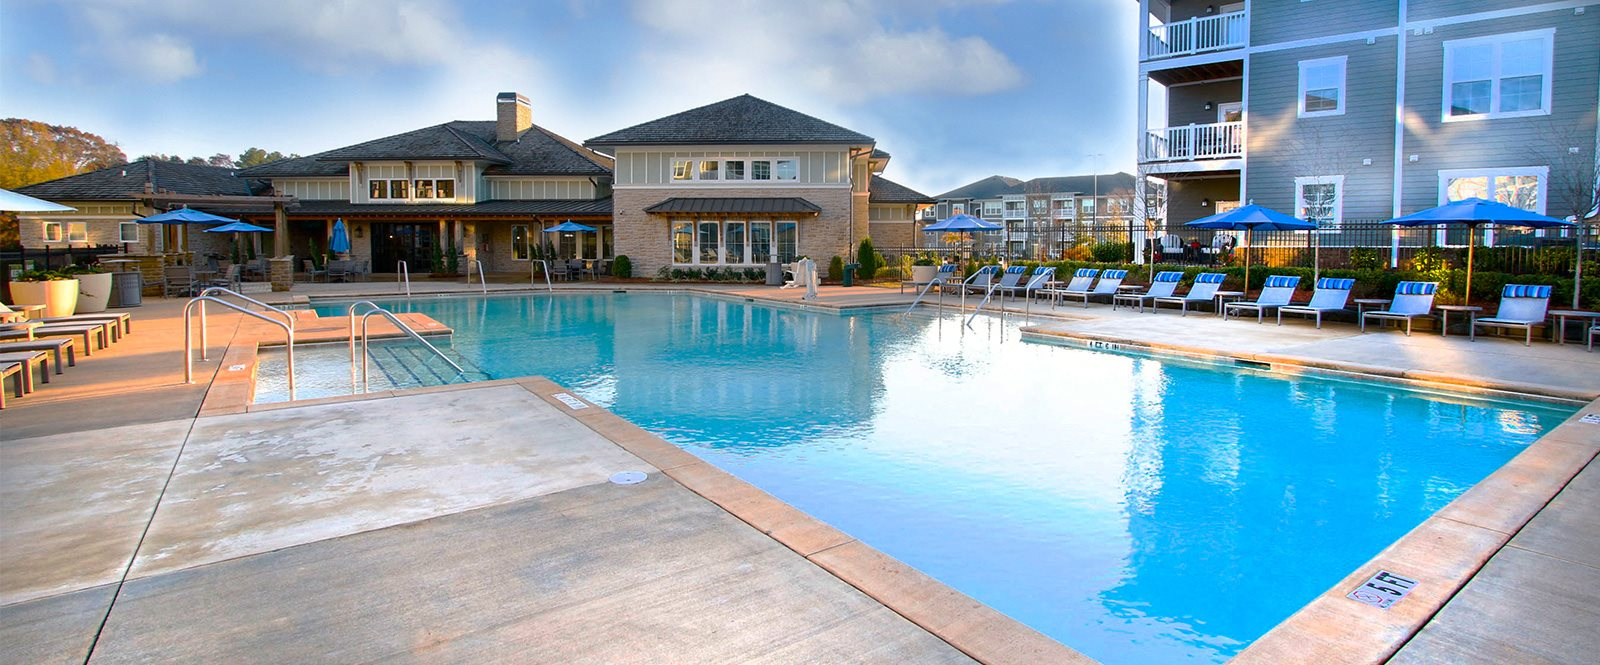 Resort Style Saltwater Pool at Abberly Market Point Apartment Homes, Greenville, SC, 29607